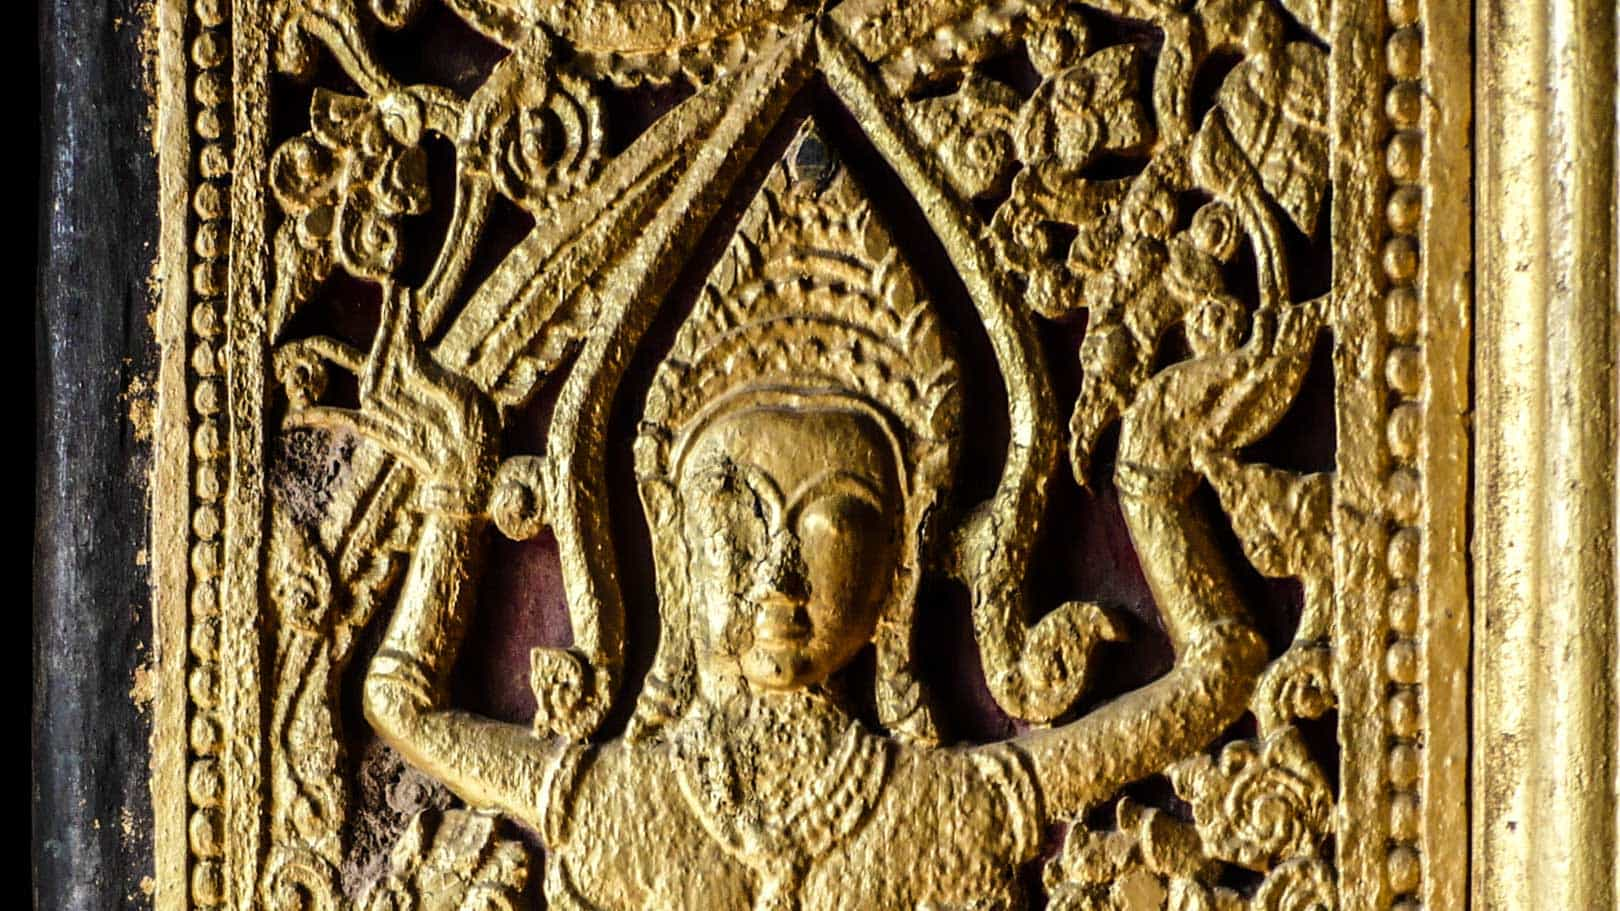 Luang Prabang - golden art